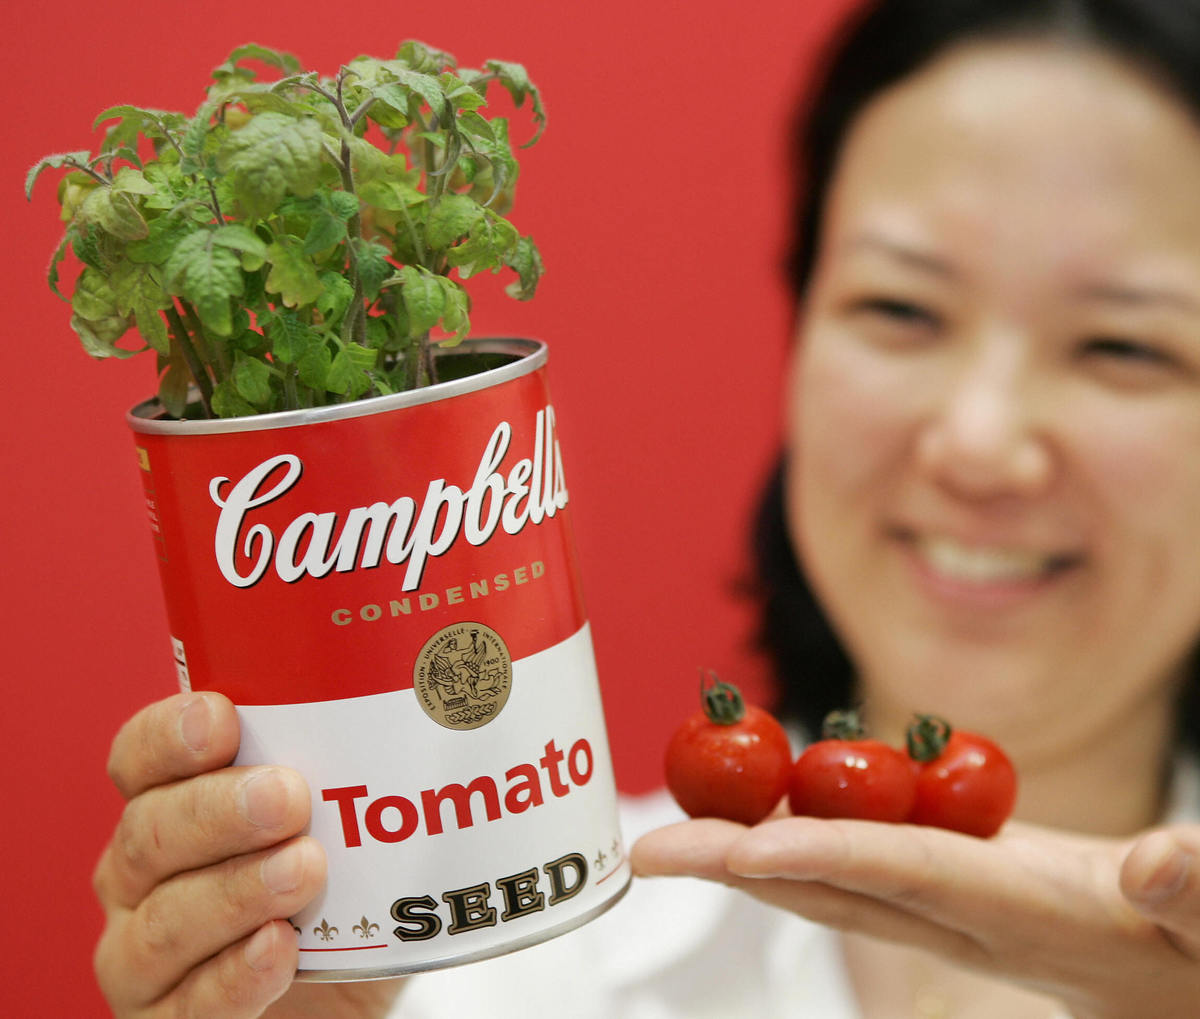 A Japanese woman displays a canned plant shaped like a Campbell's soup can,